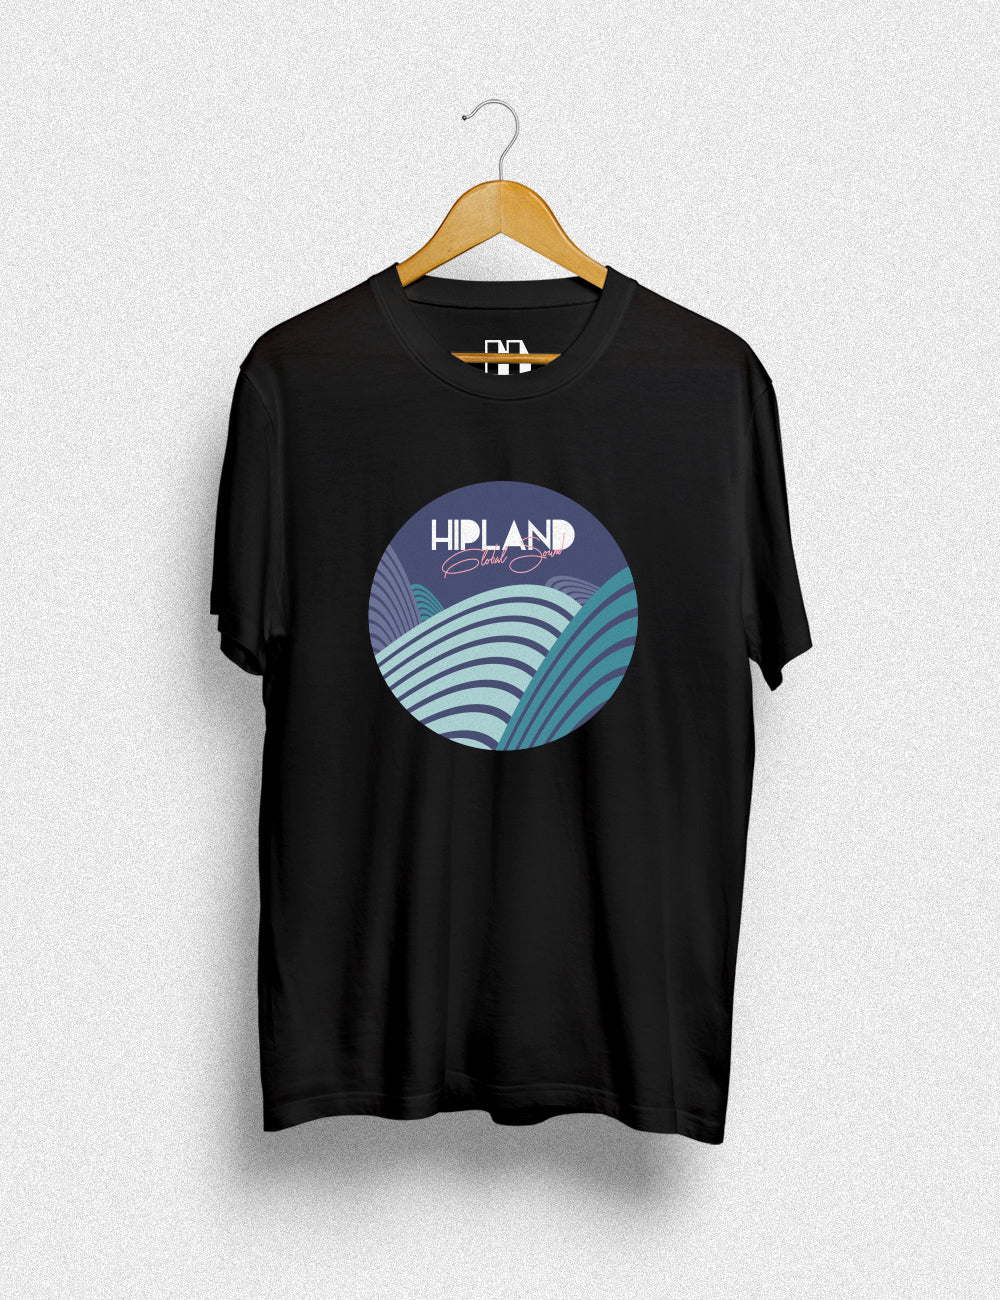 Hipland Abstract Circle unisex t-shirt in black